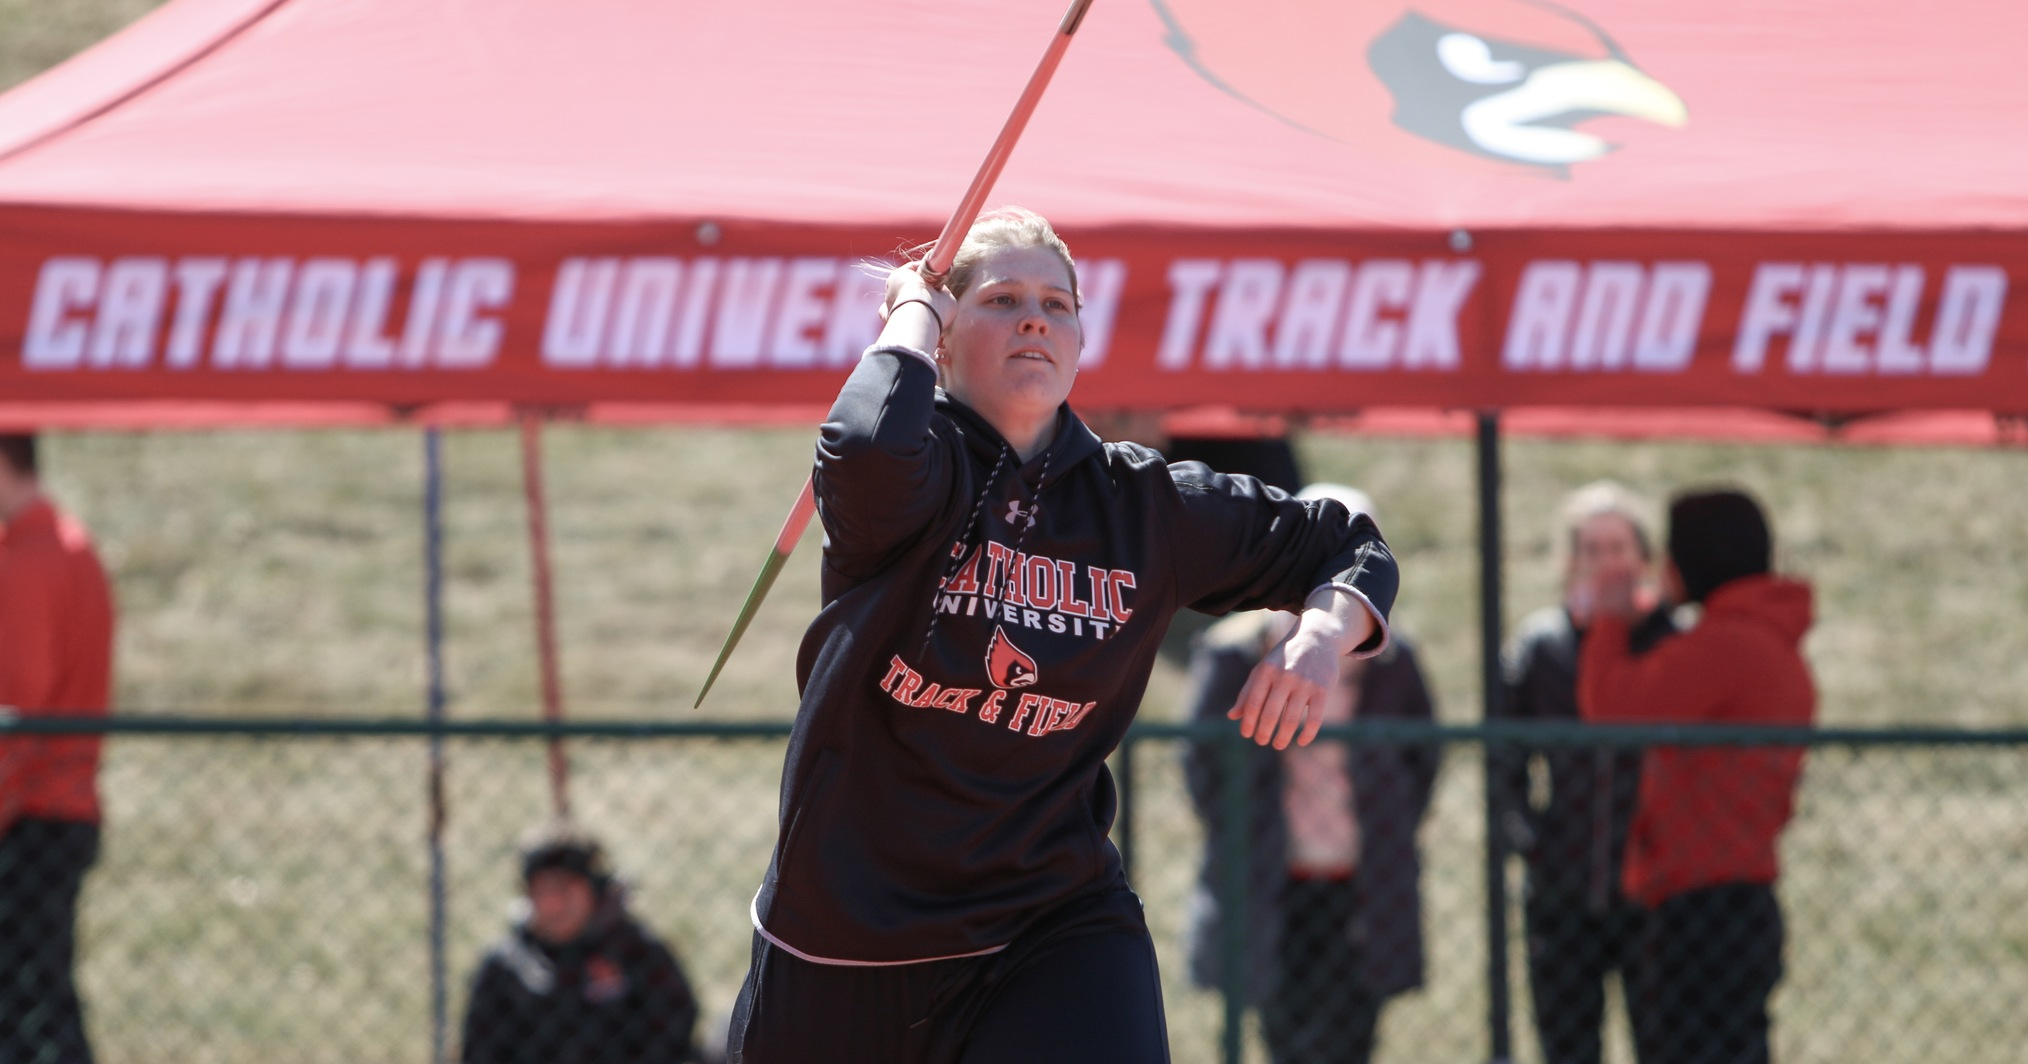 Cardinals Complete Day One of the Landmark Championships